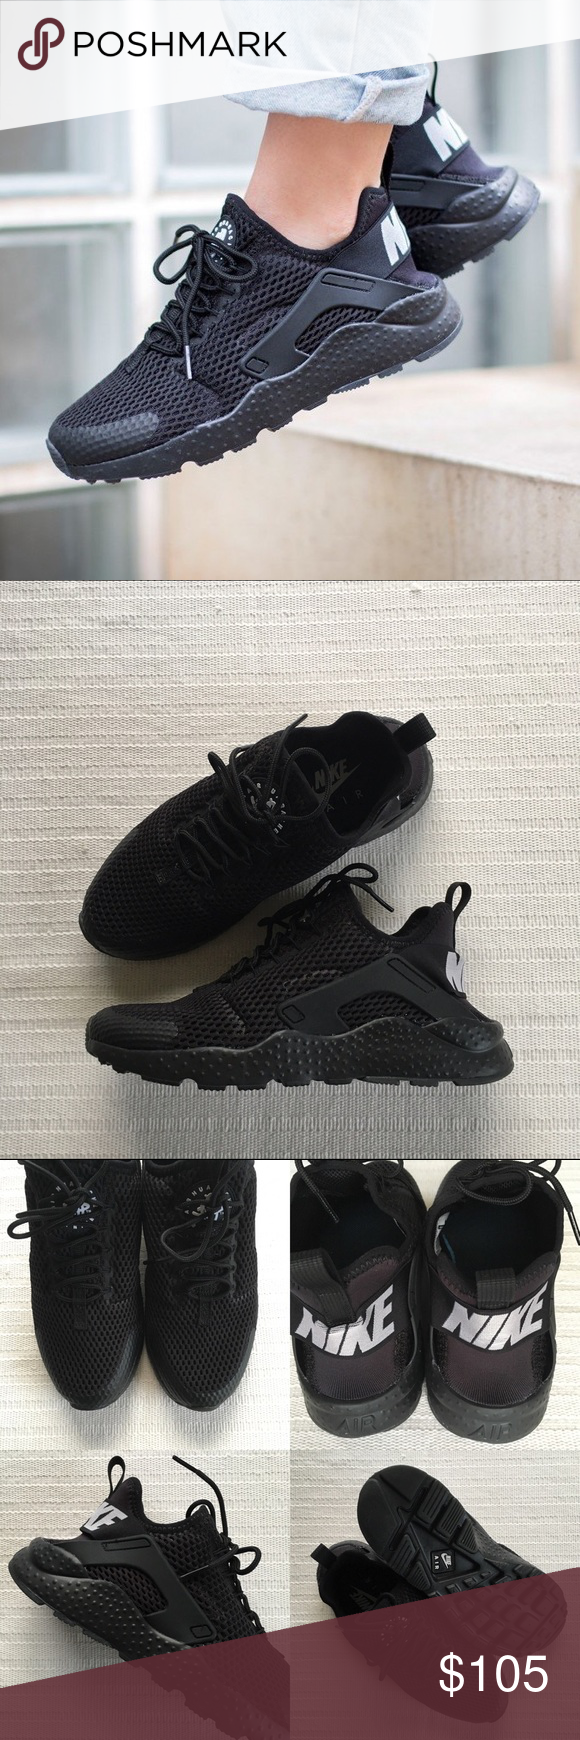 60e6da0f52fa Women s Nike Air Huarache Run Ultra Breathe Black Women s Nike Air Huarache  Run Ultra Breathe Black Style Color  833292-001 • Women s size 7.5 • NEW in  box ...